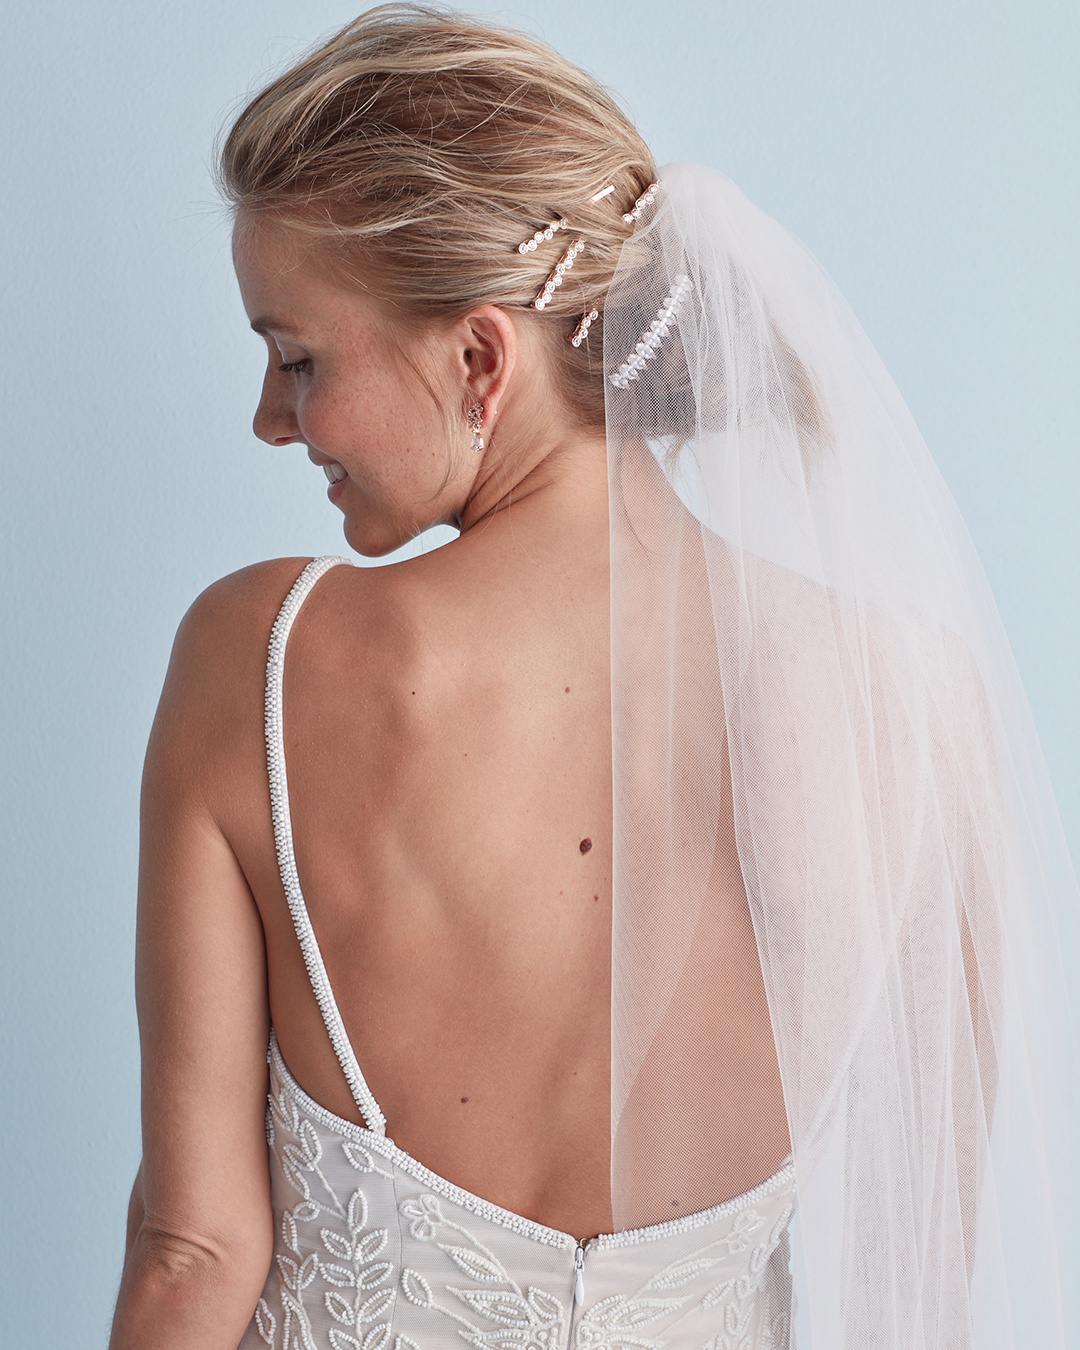 Wedding hairstyle with layered pins and veil in messy bun